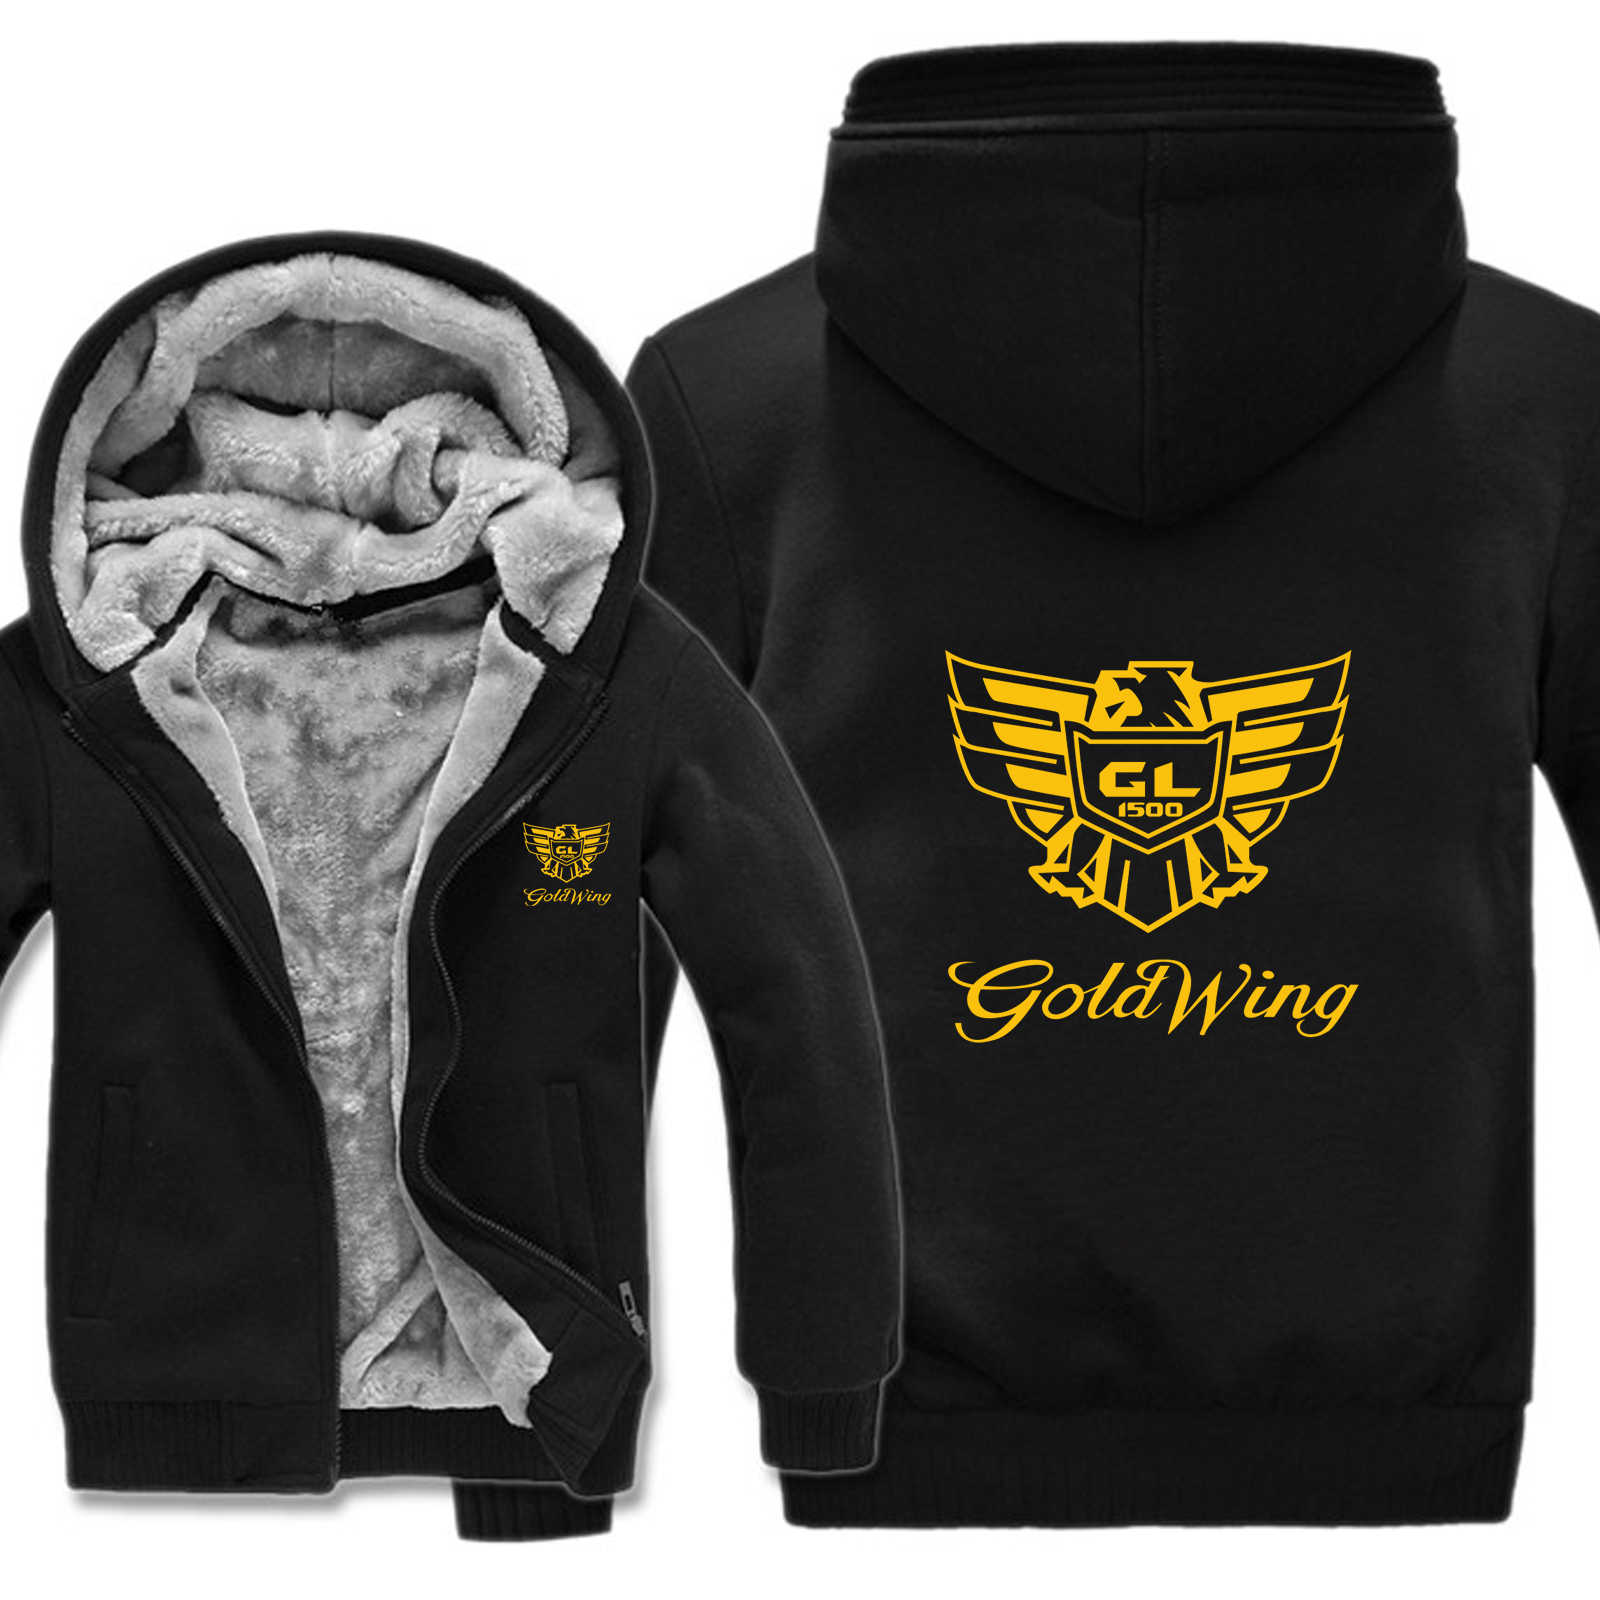 Goldwing GL1500 sweat à capuche pour homme hiver veste de doublure en laine Thinken sweat-shirts Goldwing HS-087